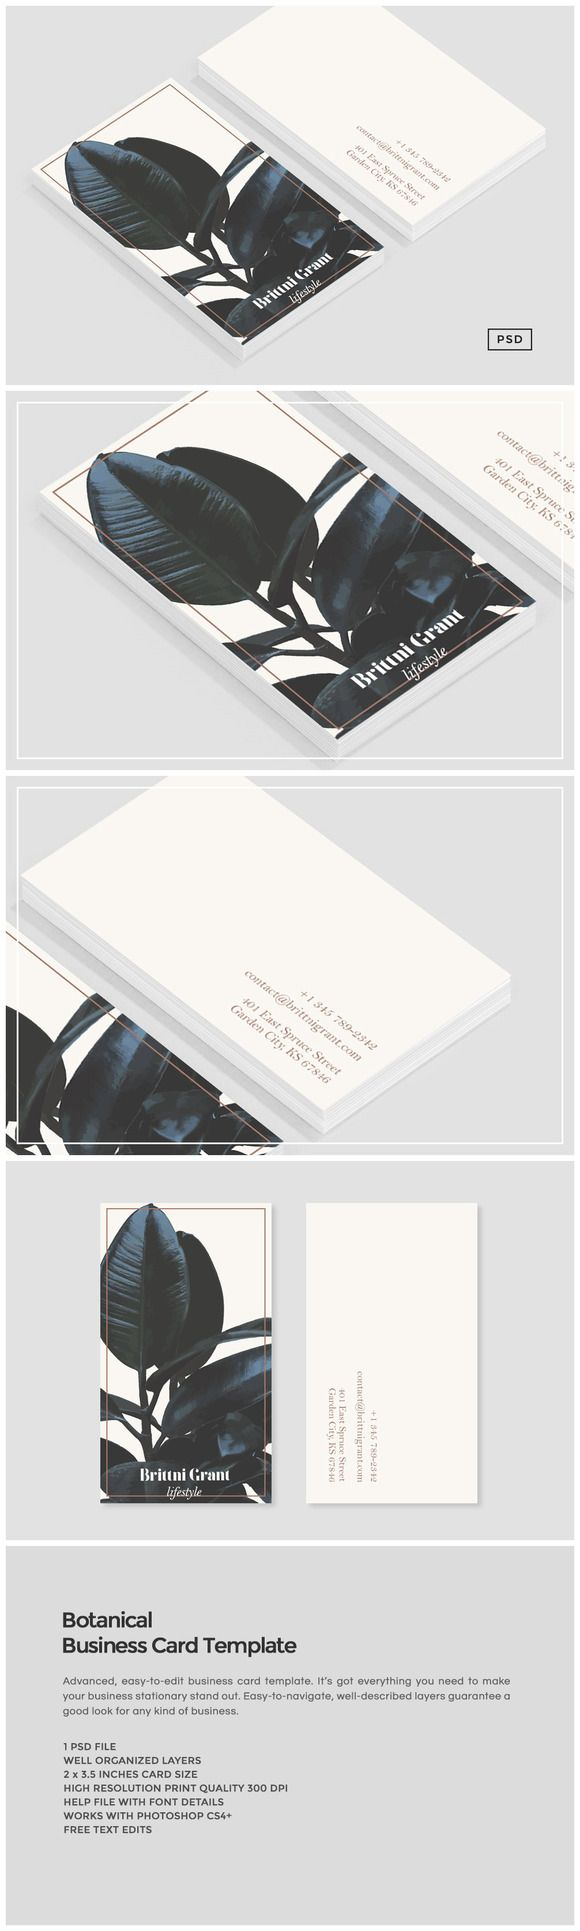 Botanical Business card Template by Design Co. on @creativemarket